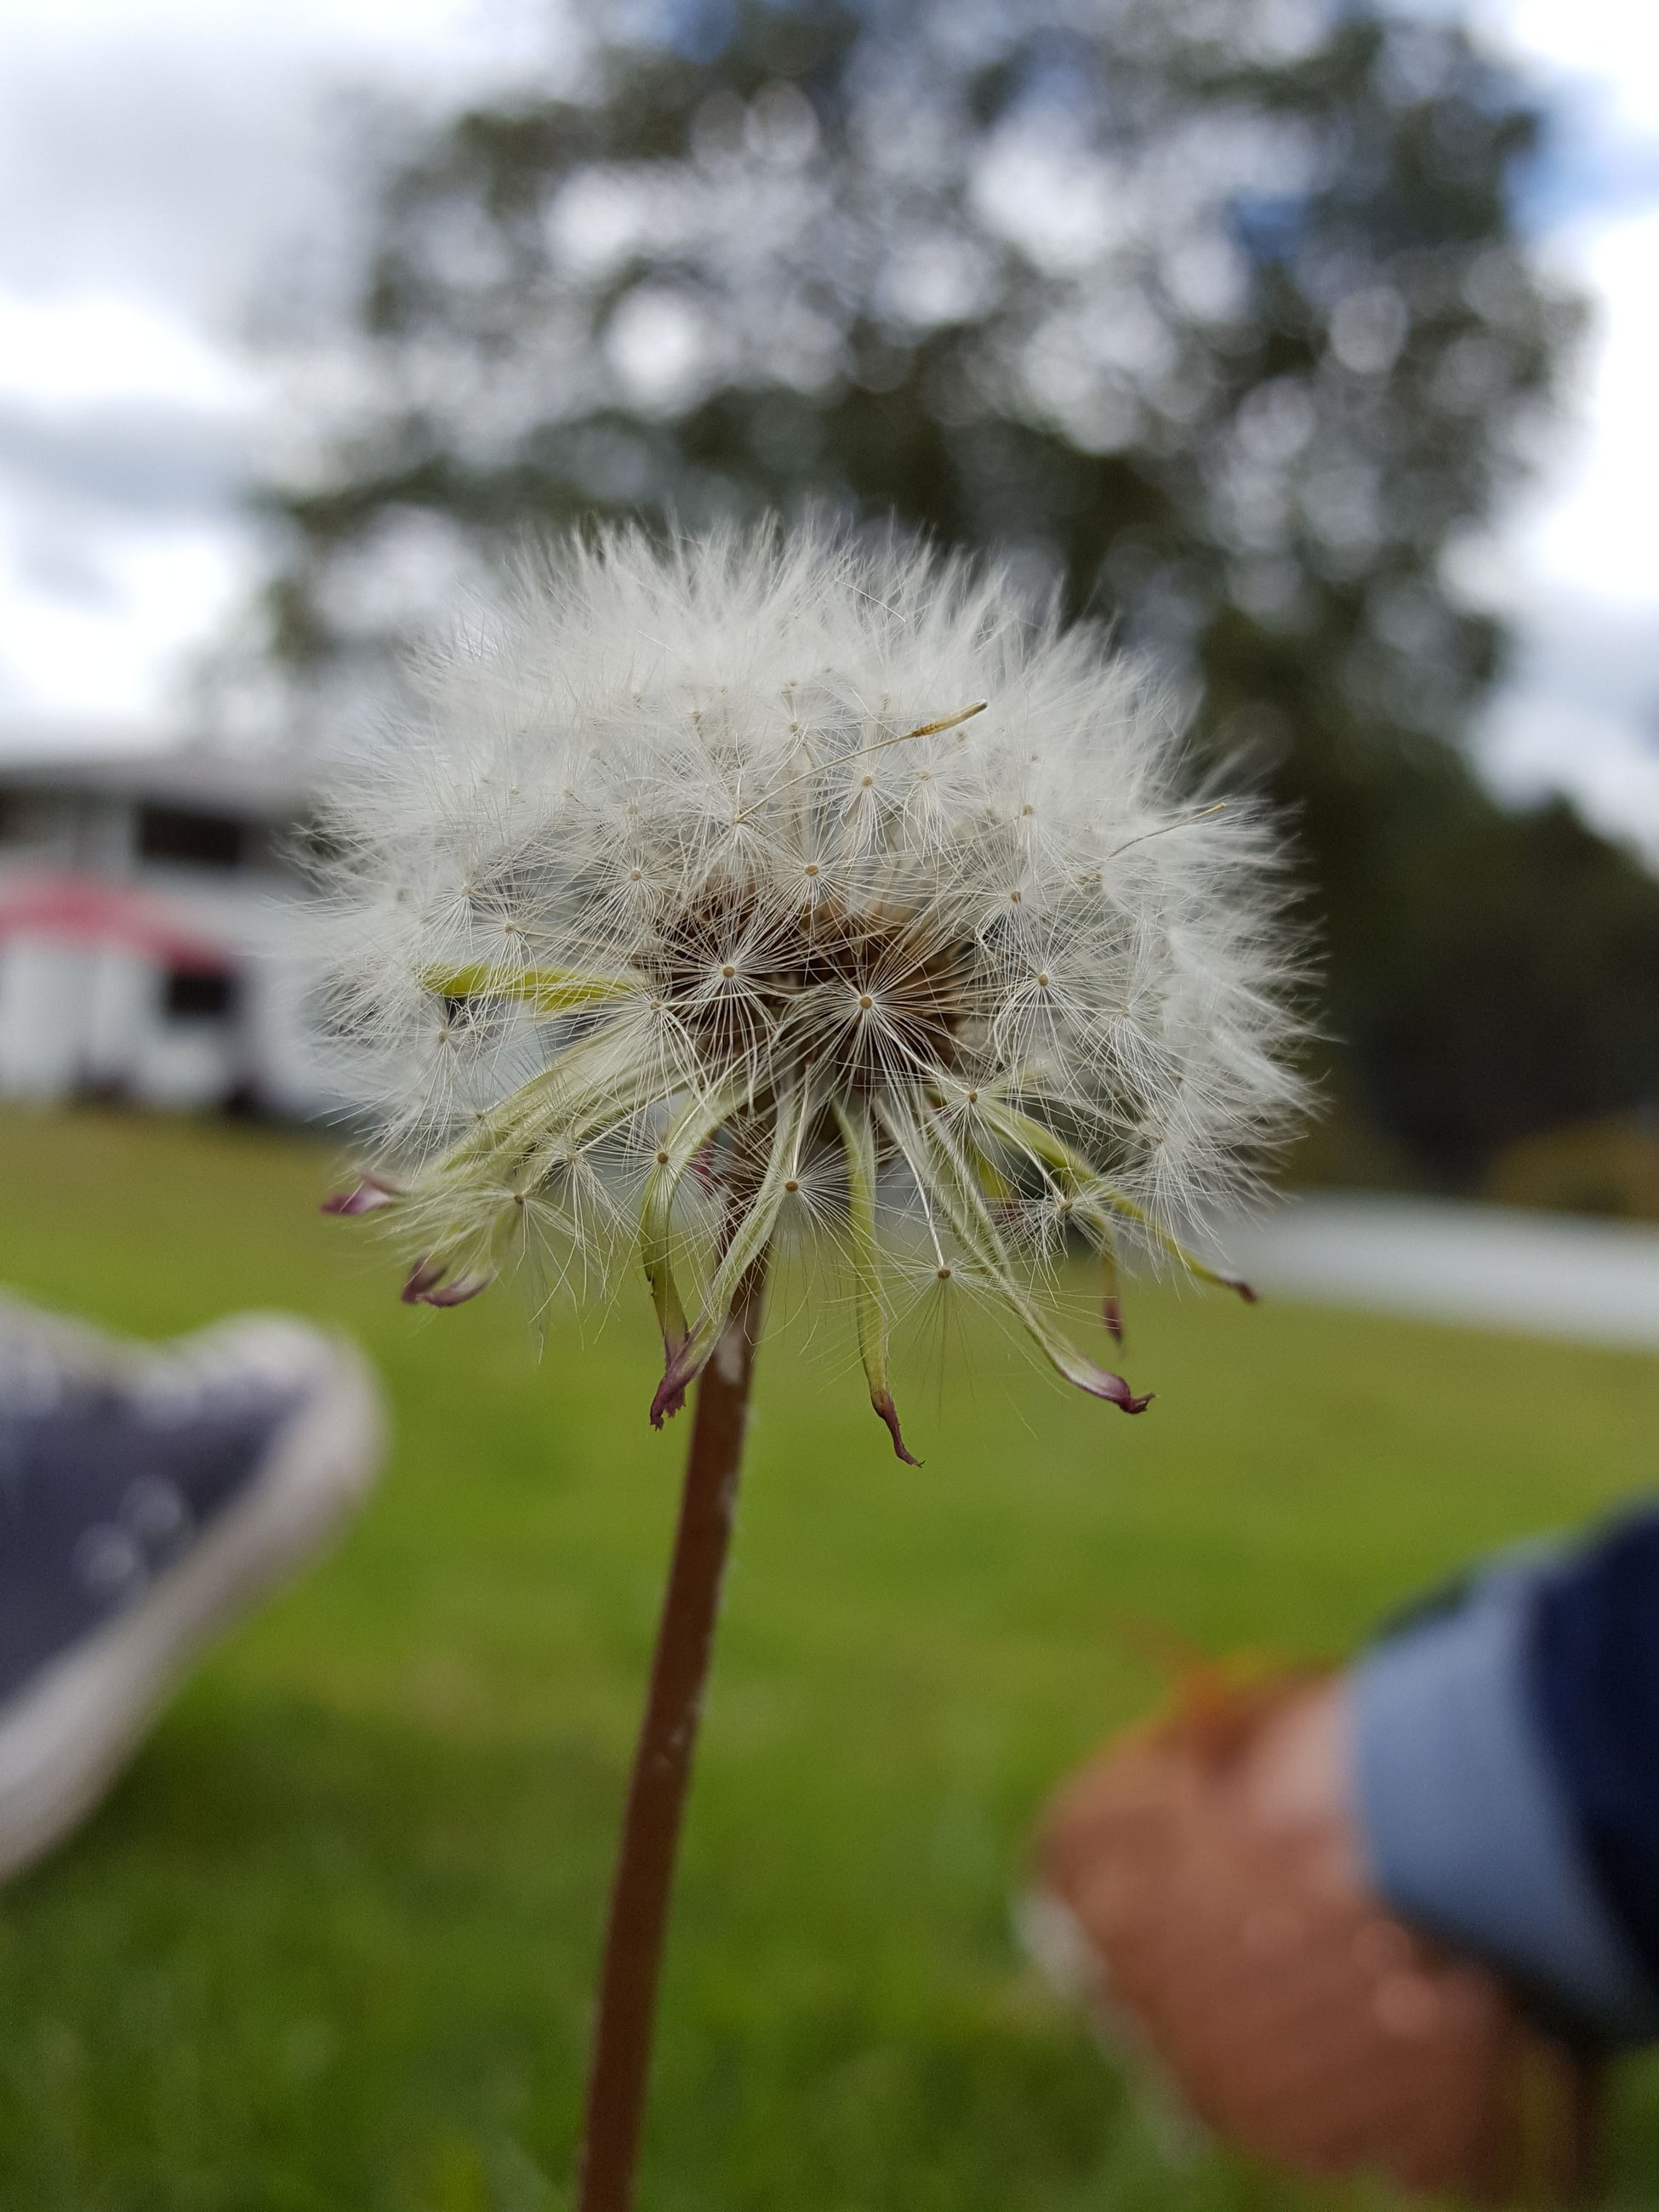 dandelion, flower, fragility, focus on foreground, freshness, flower head, growth, close-up, single flower, nature, stem, beauty in nature, softness, dandelion seed, plant, wildflower, selective focus, uncultivated, day, outdoors